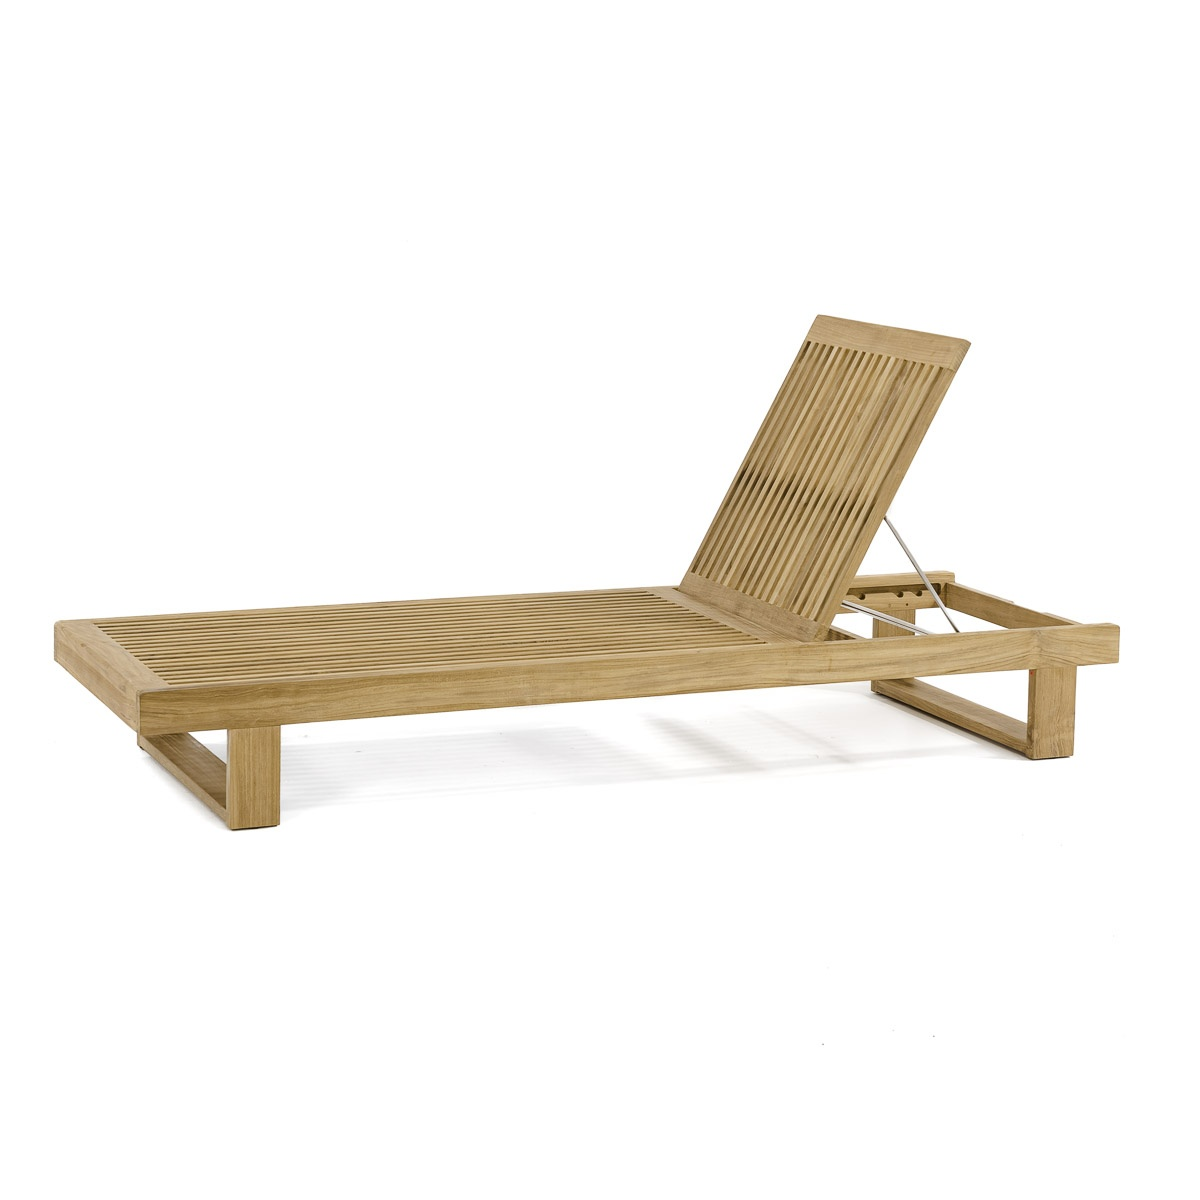 Horizon Teak Chaise Lounger For Pool And Patio